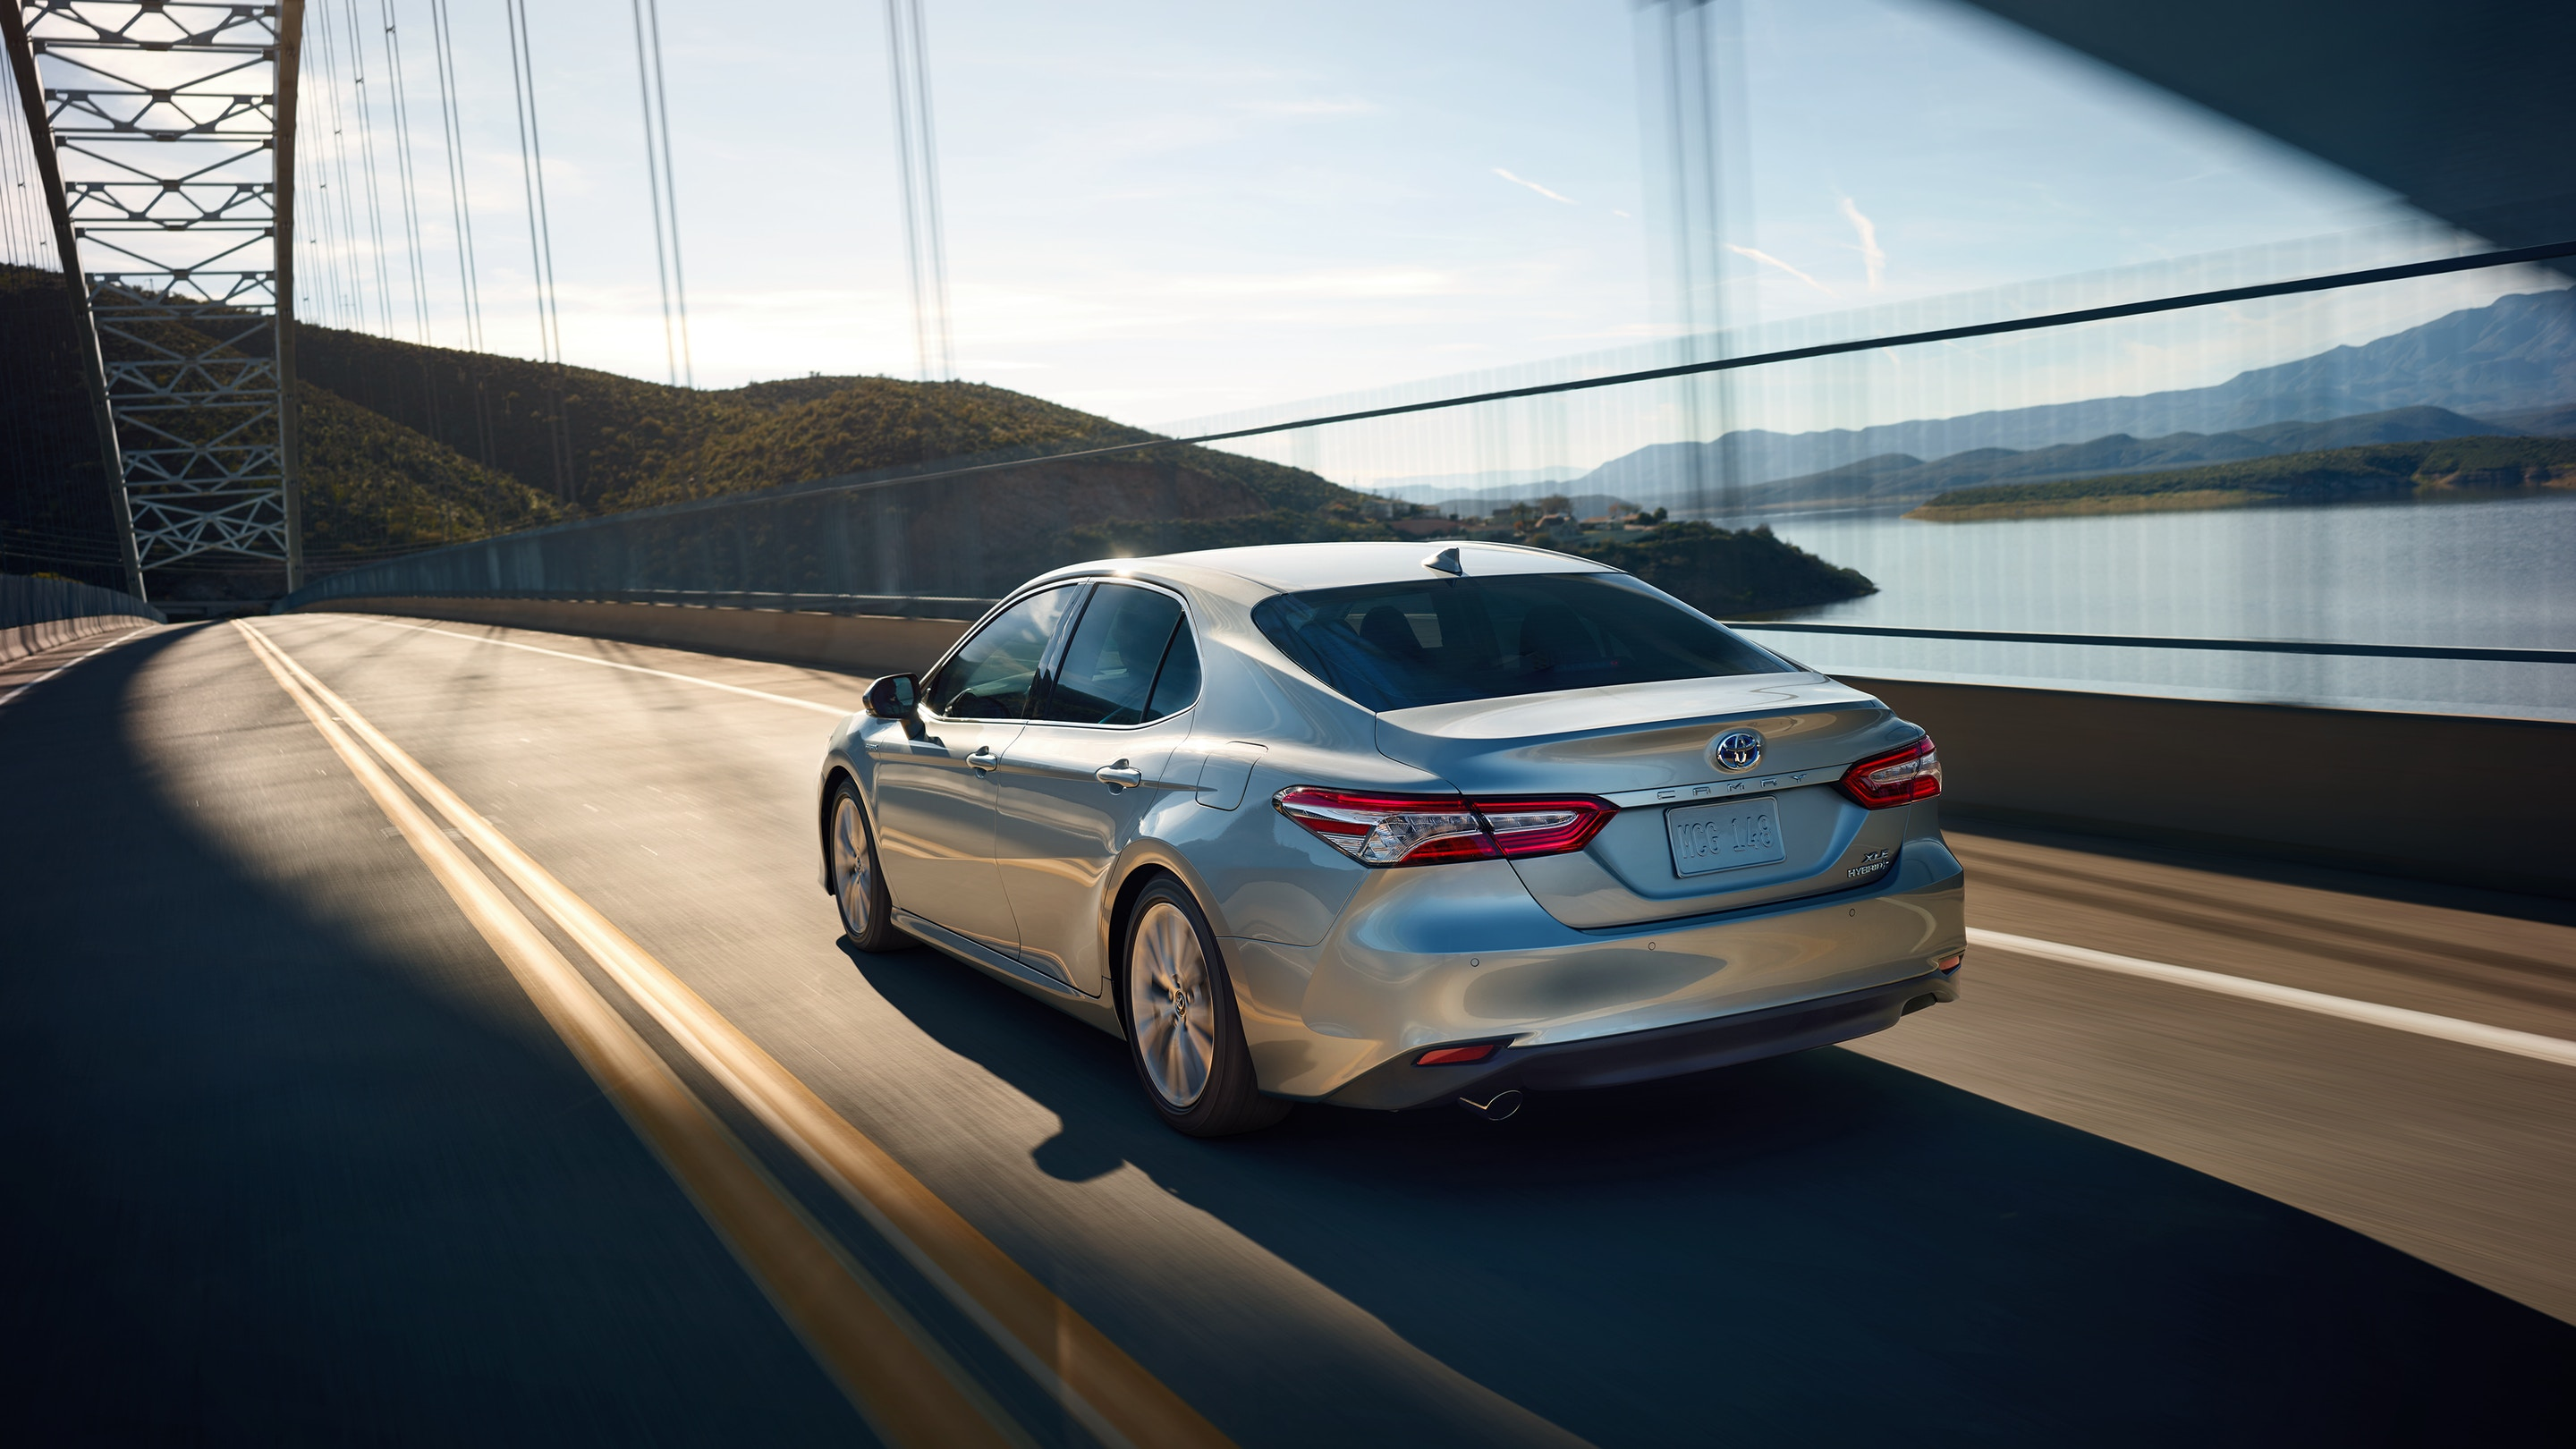 2019 Toyota Camry Financing near Westmont, IL